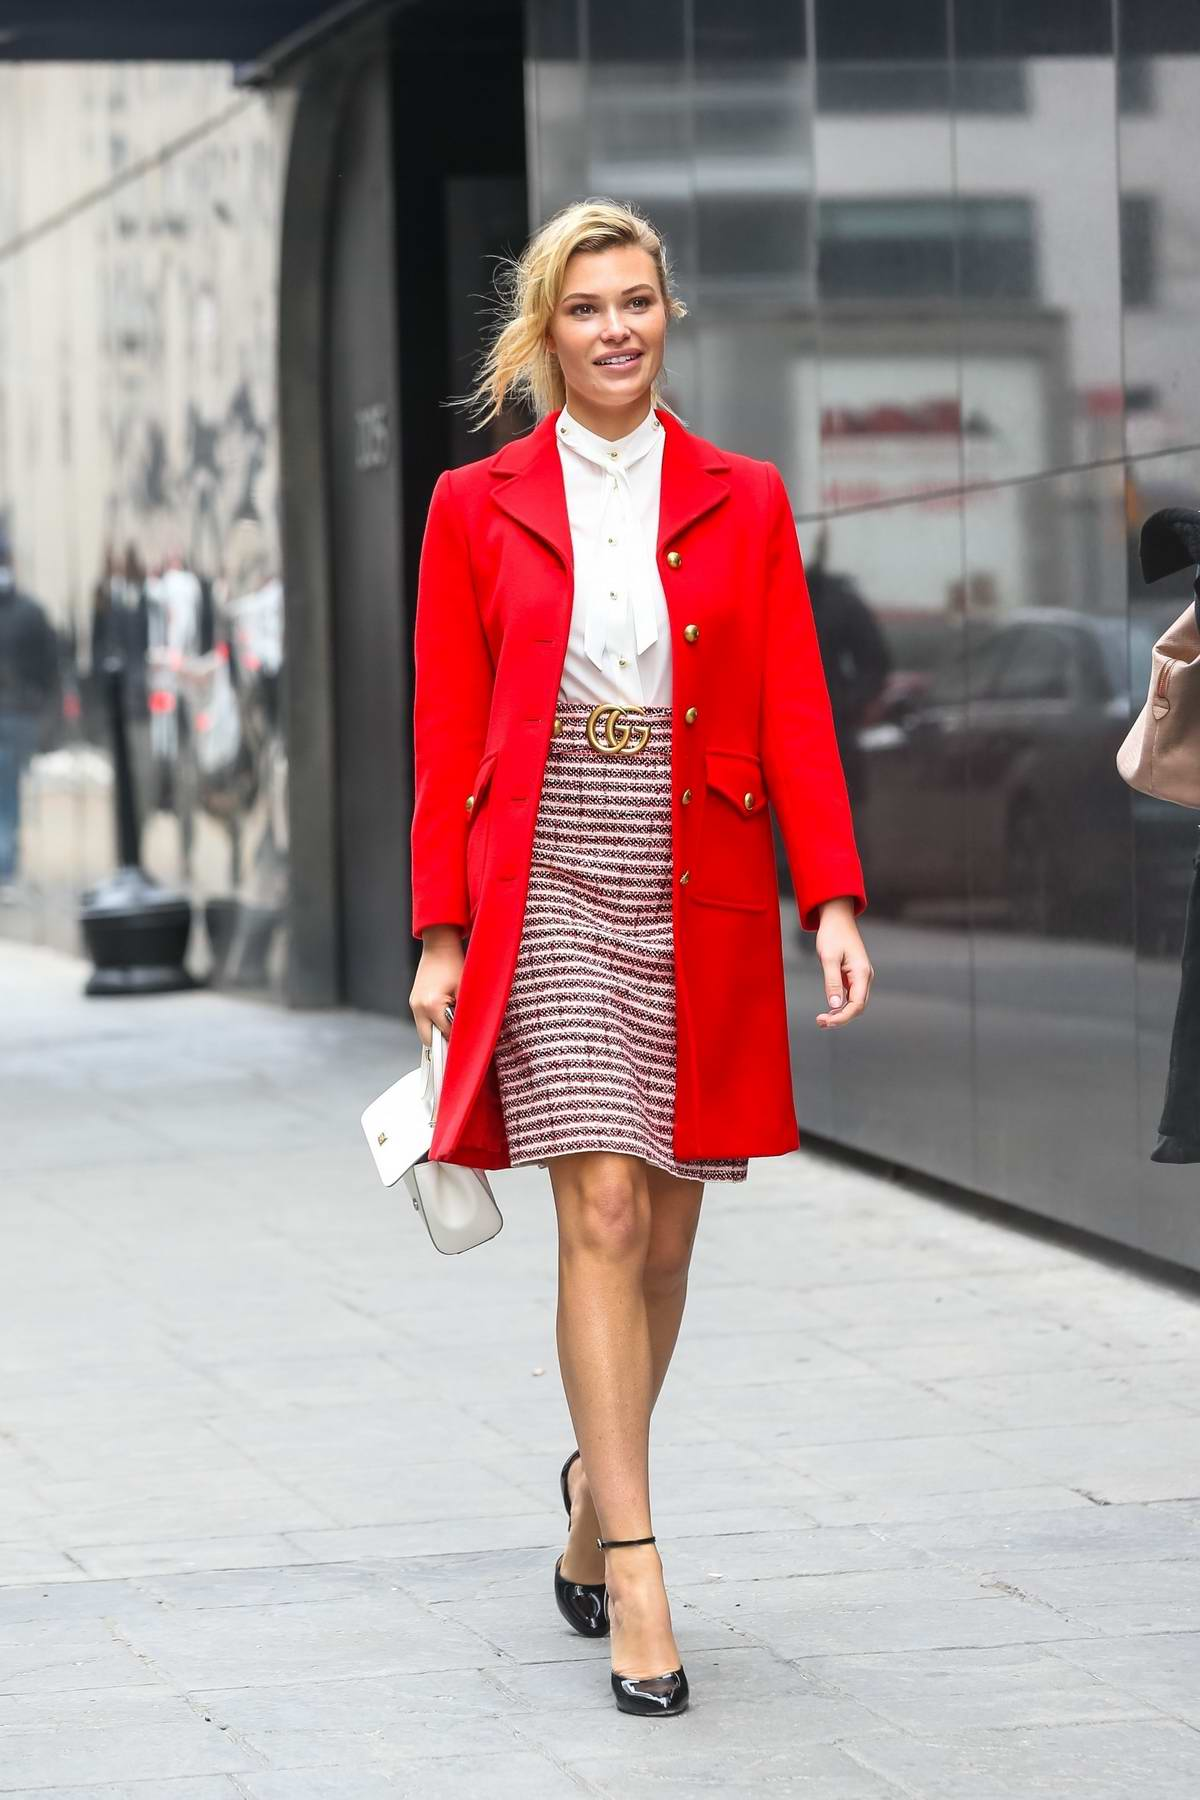 Samantha Hoopes sports a red Gucci blazer as she visits FOX 5 to make an appearance on 'Good Day' in New York City